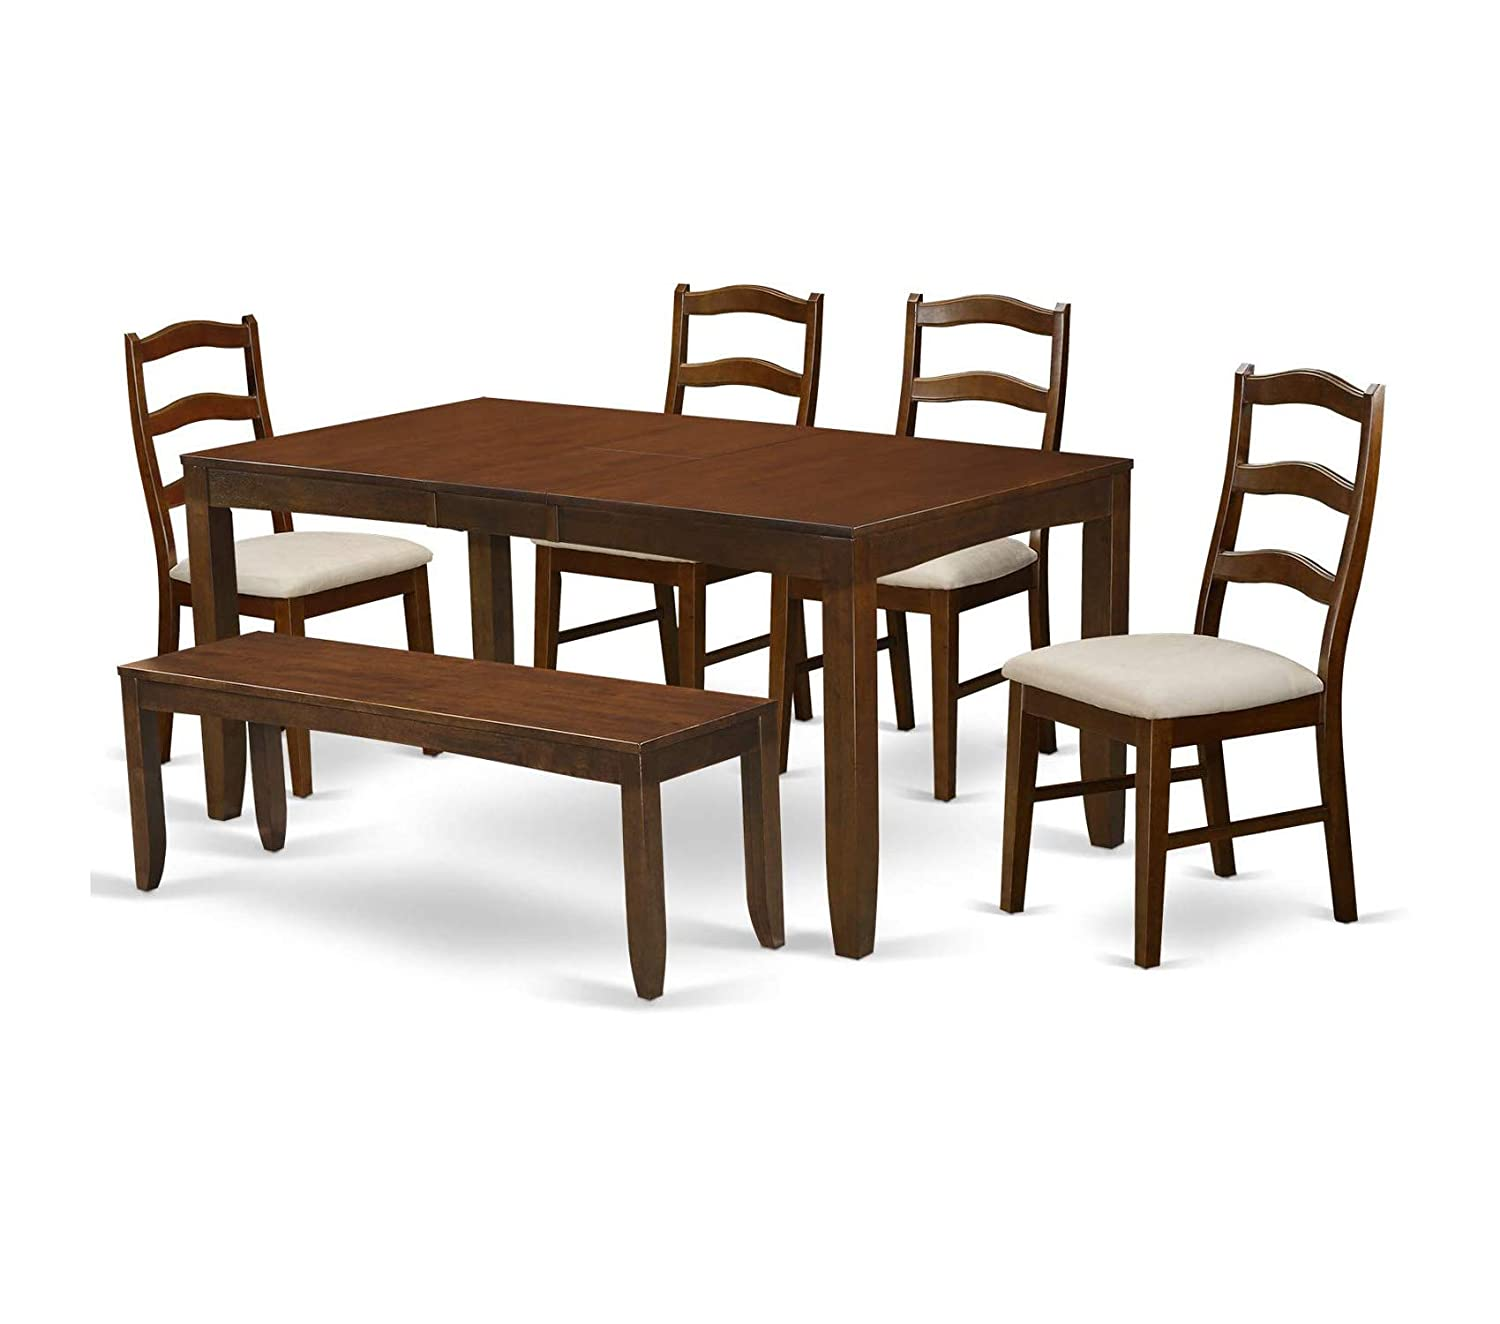 """Deluxe Premium Collection 6 Piece Set Lynfield Dining Table with One 12"""" Leaf and 4 Padded Seat Chairs Plus Bench in Espresso Decor Comfy Living Furniture"""